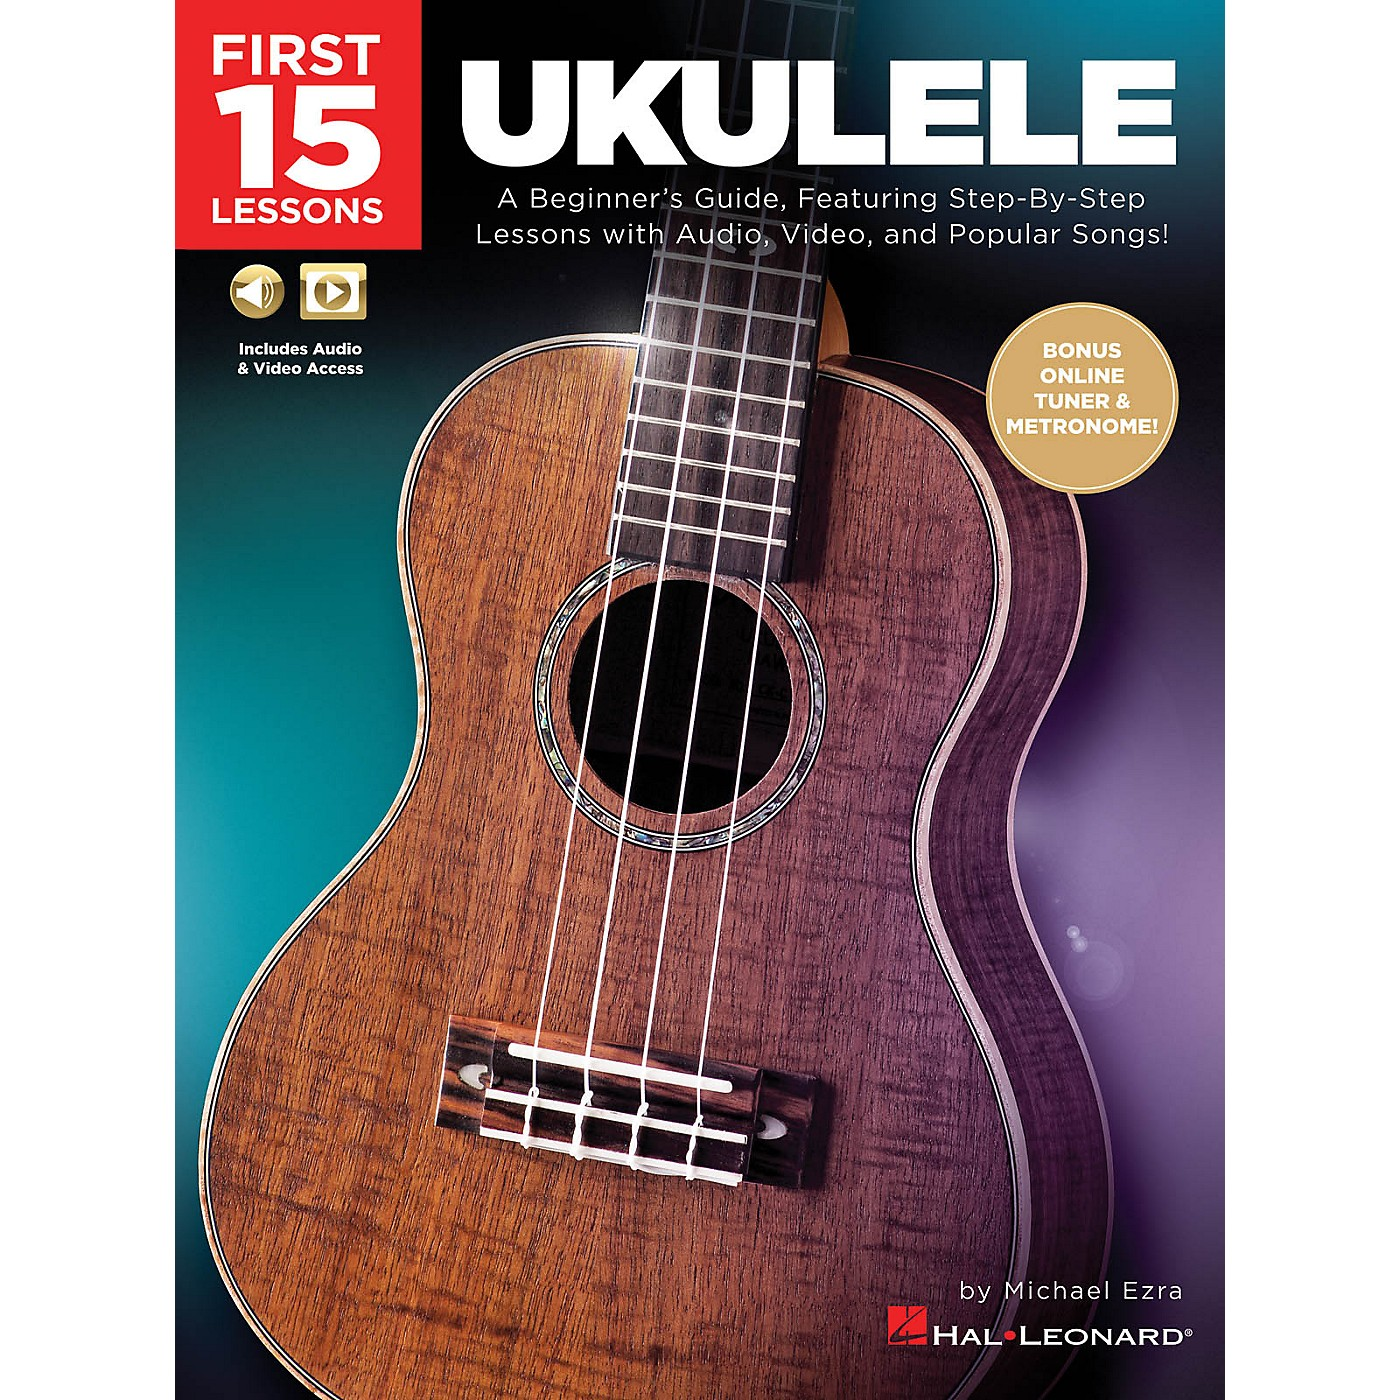 Hal Leonard First 15 Lessons - Ukulele (A Beginner's Guide, Featuring Step-By-Step Lessons with Audio, Video, and Popular Songs!) thumbnail